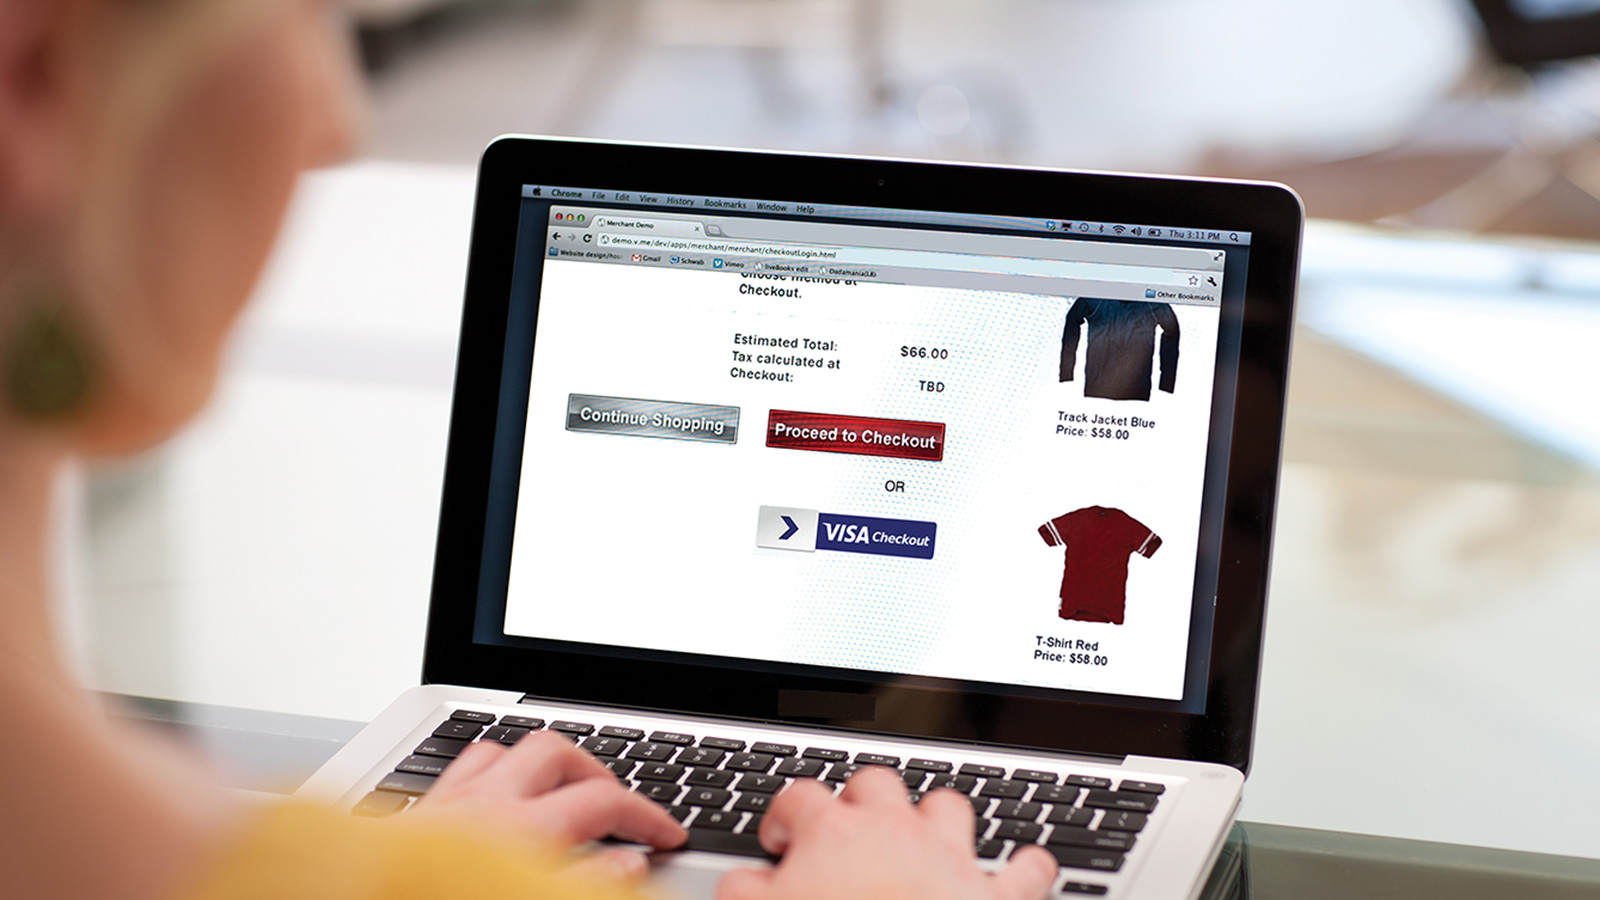 Woman on a laptop using the Visa Checkout option to complete an online purchase.